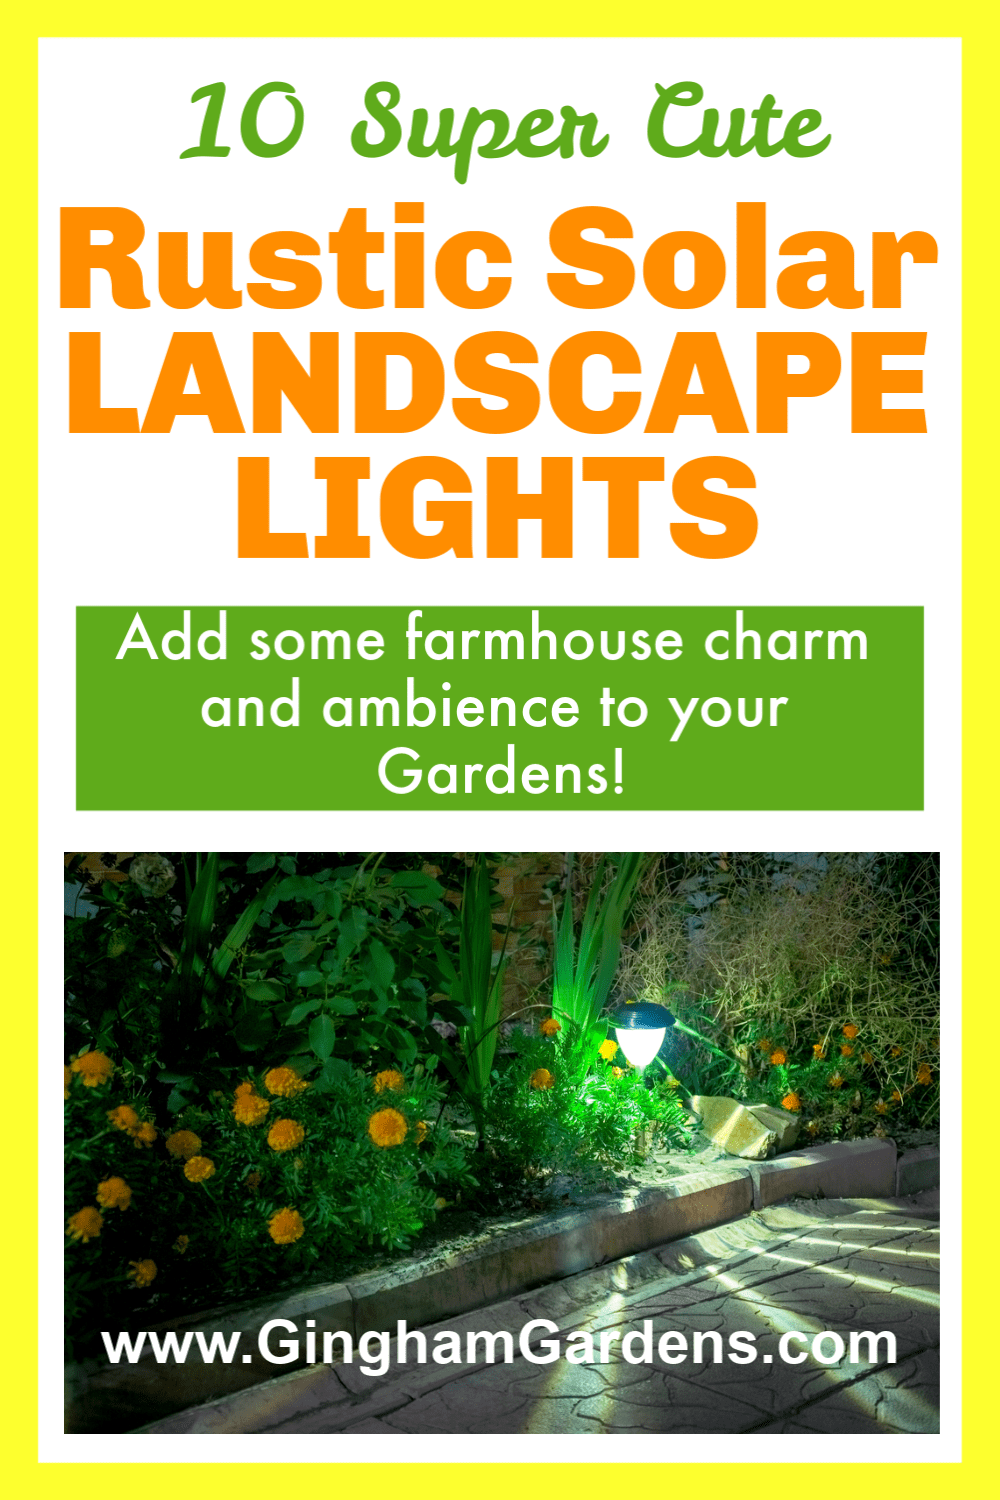 Image of garden with landscape with text overlay - Rustic Solar Landscape Lights